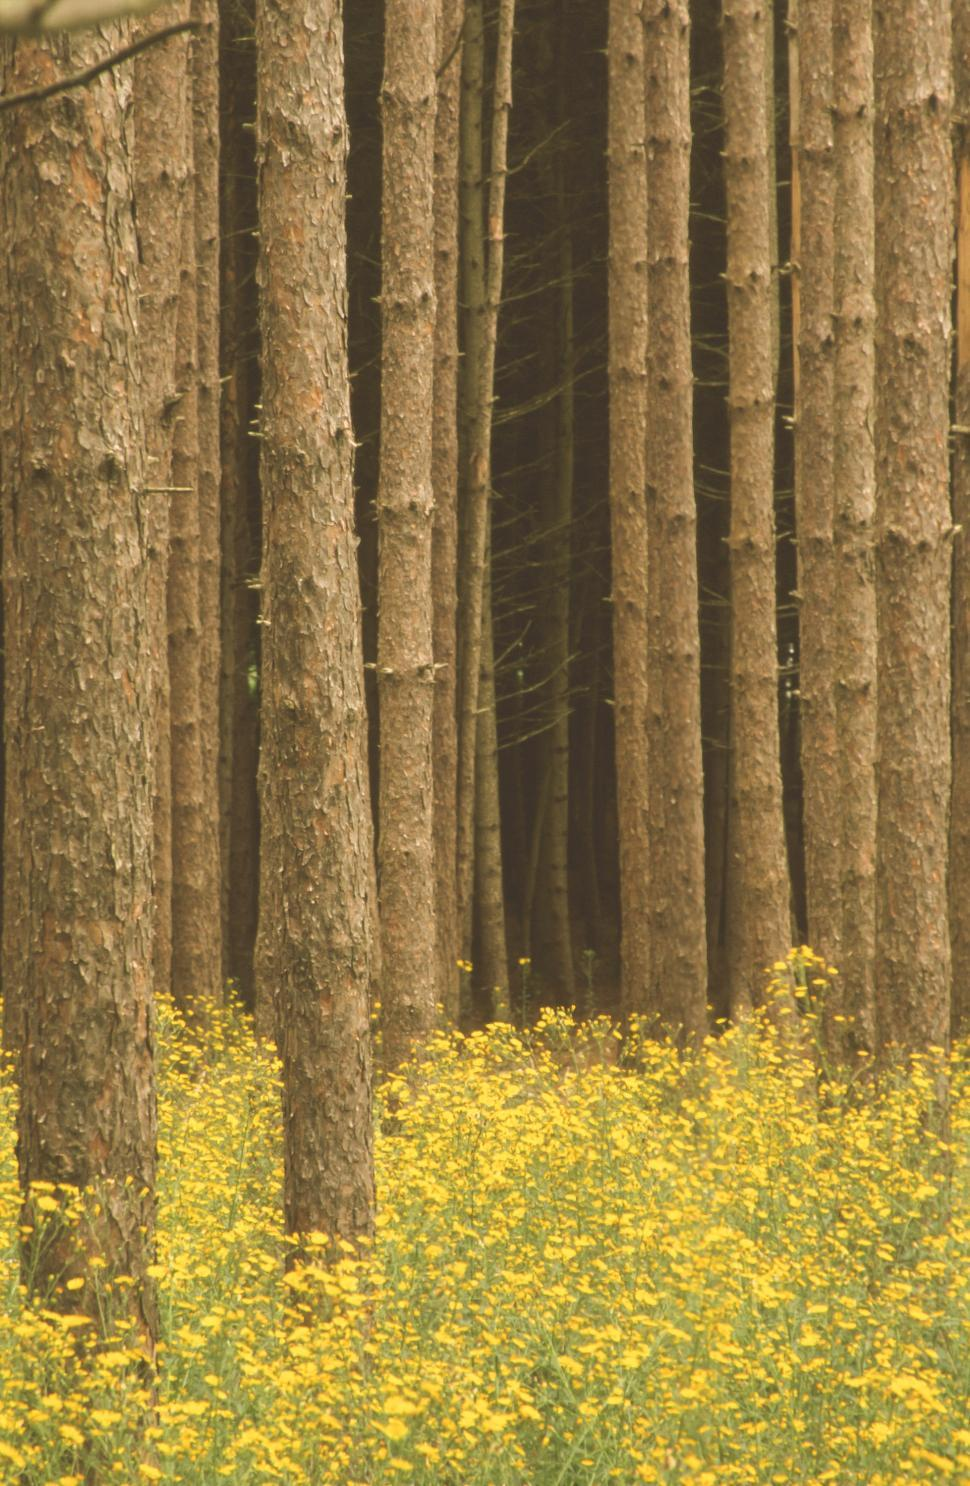 Download Free Stock Photo of Tree Trunks and Bulbous Buttercup Flowers Background